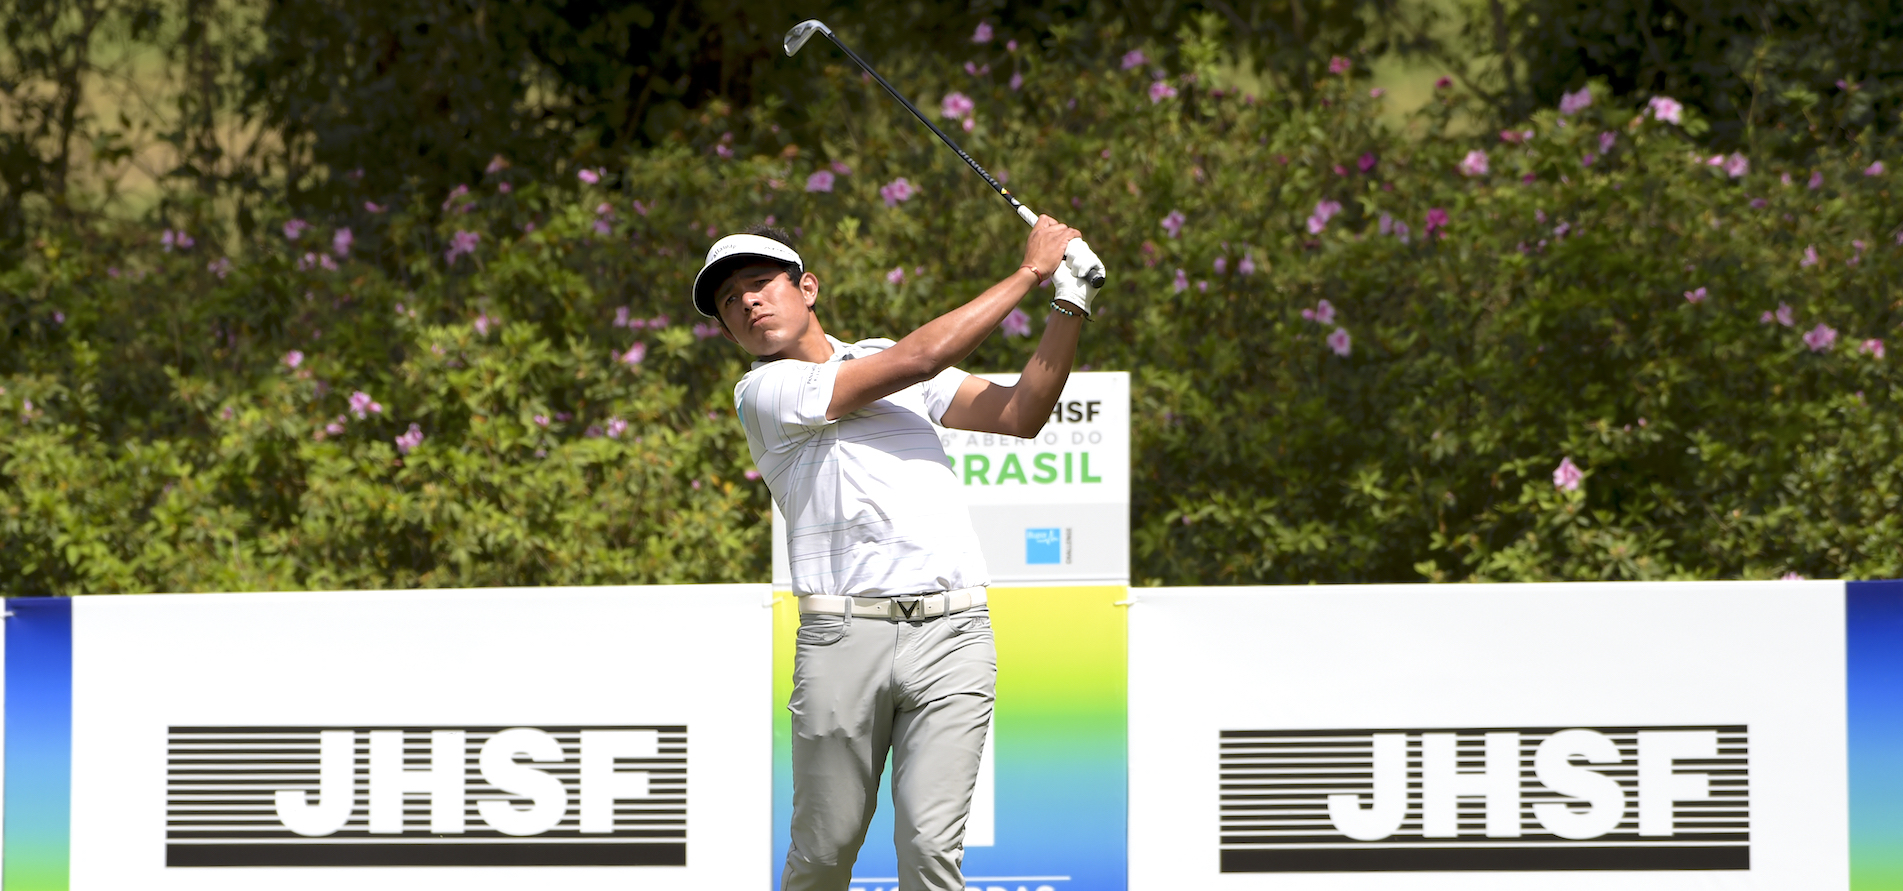 Augusto Nuñez. (Photo by Enrique Berardi/PGA TOUR).